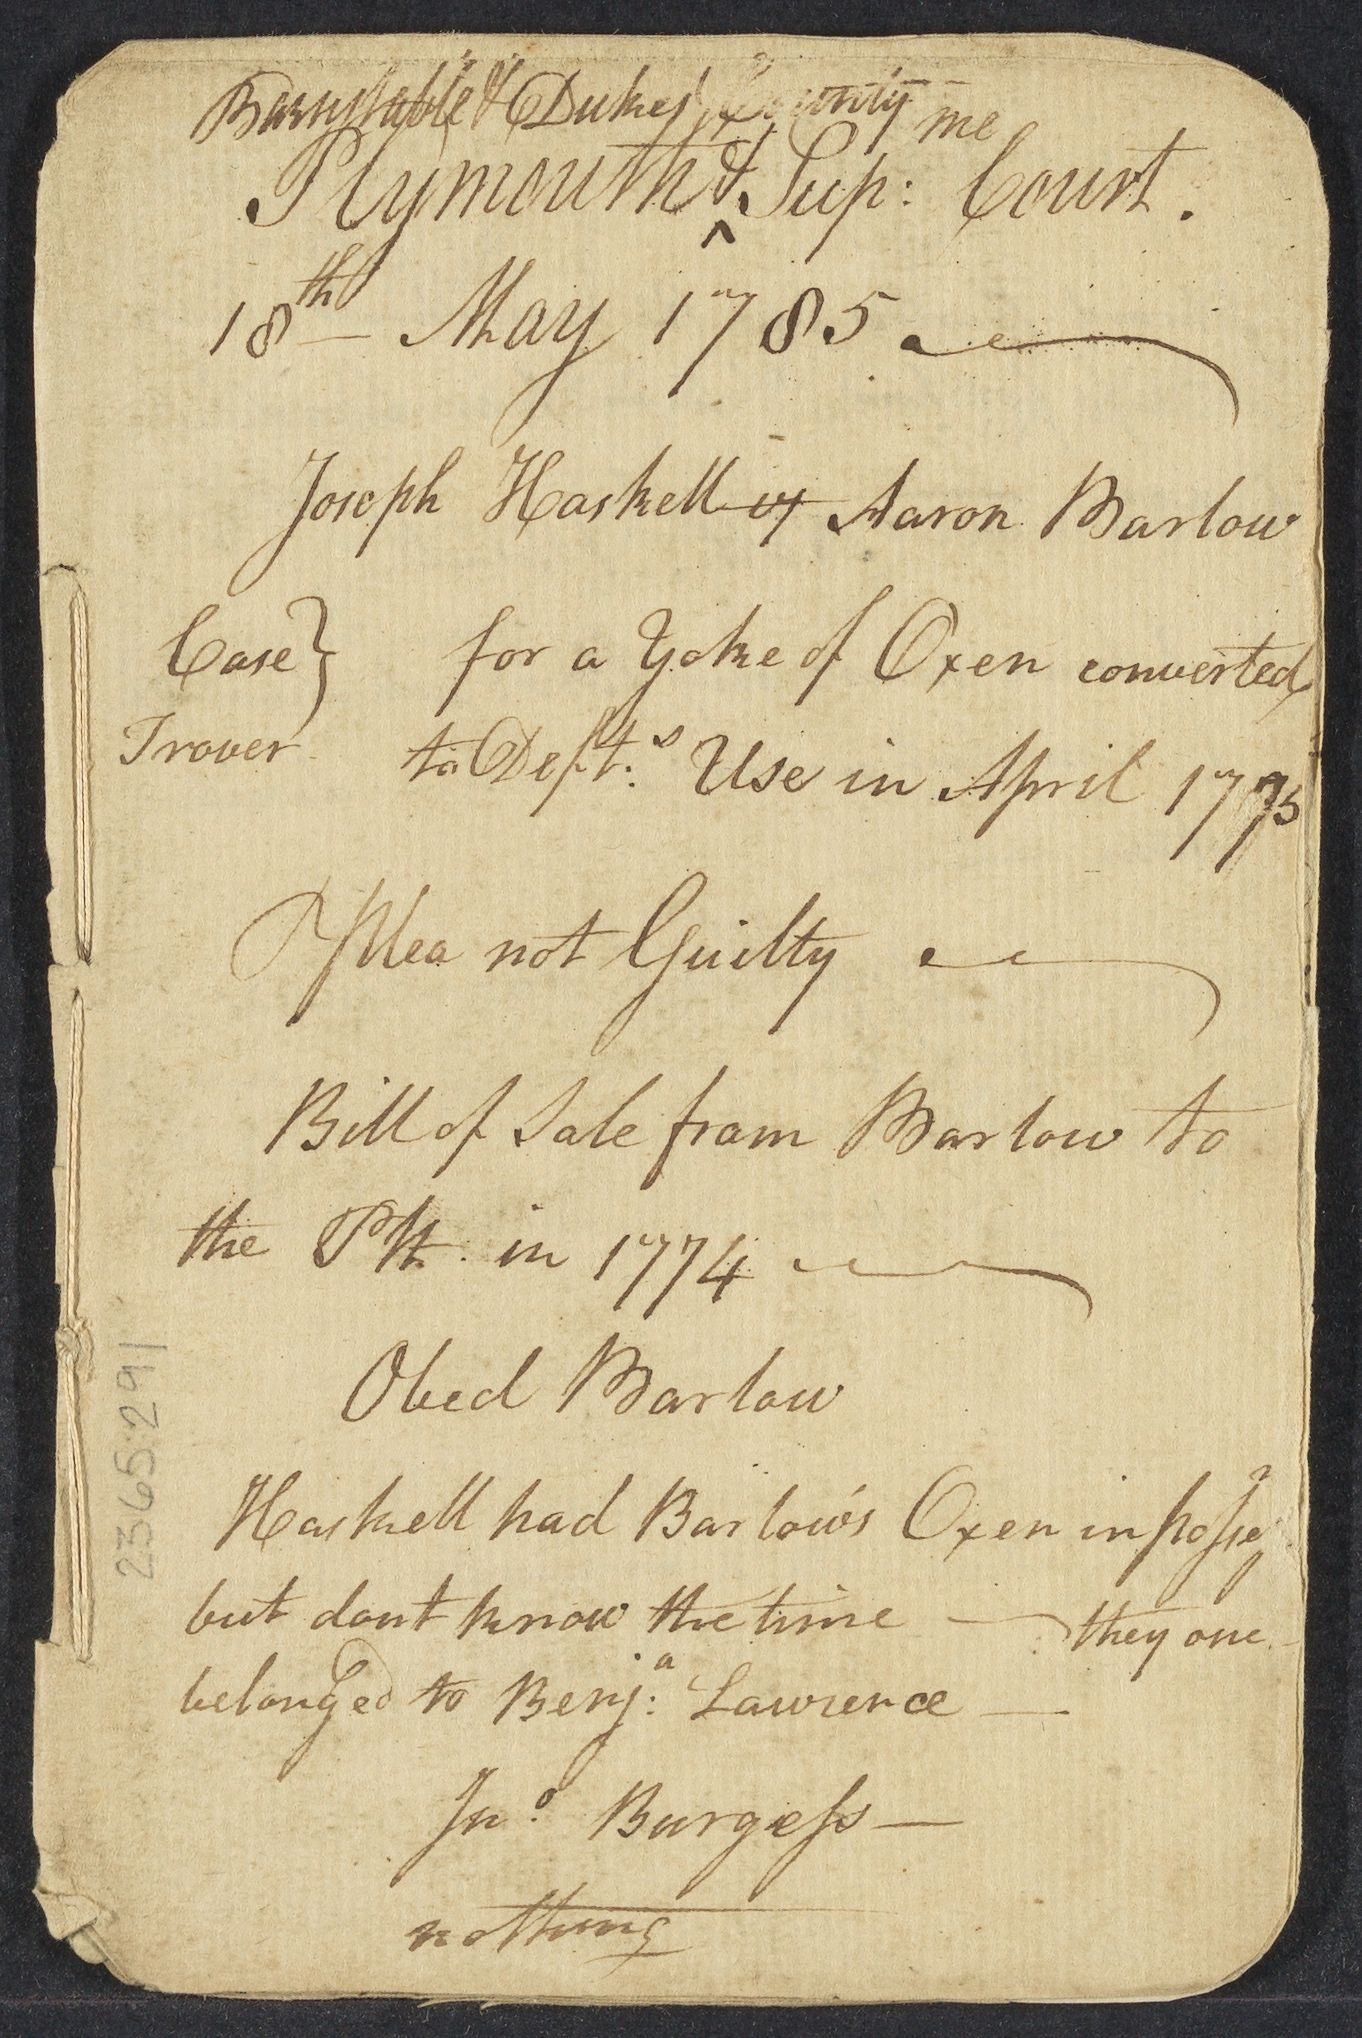 Notes on cases in Plymouth, Barnstable and Duke Counties, 1785